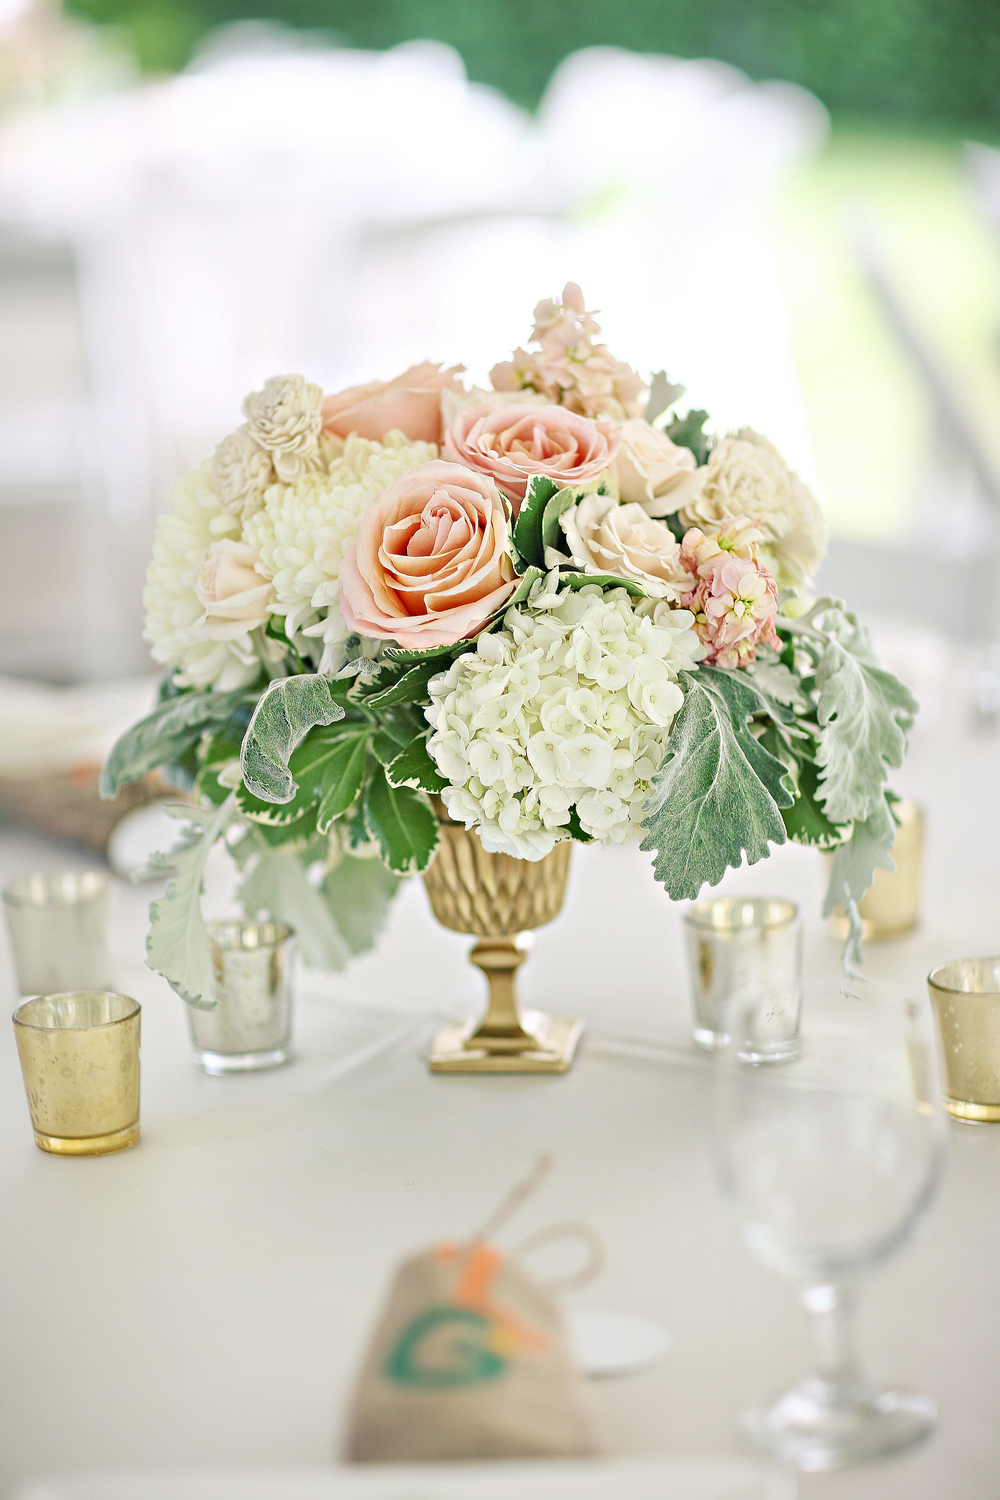 Passion roots oahu hawaii florist centerpieces peach accent flower arrangement in gold vase by passion roots frank amodo photography oahu junglespirit Choice Image